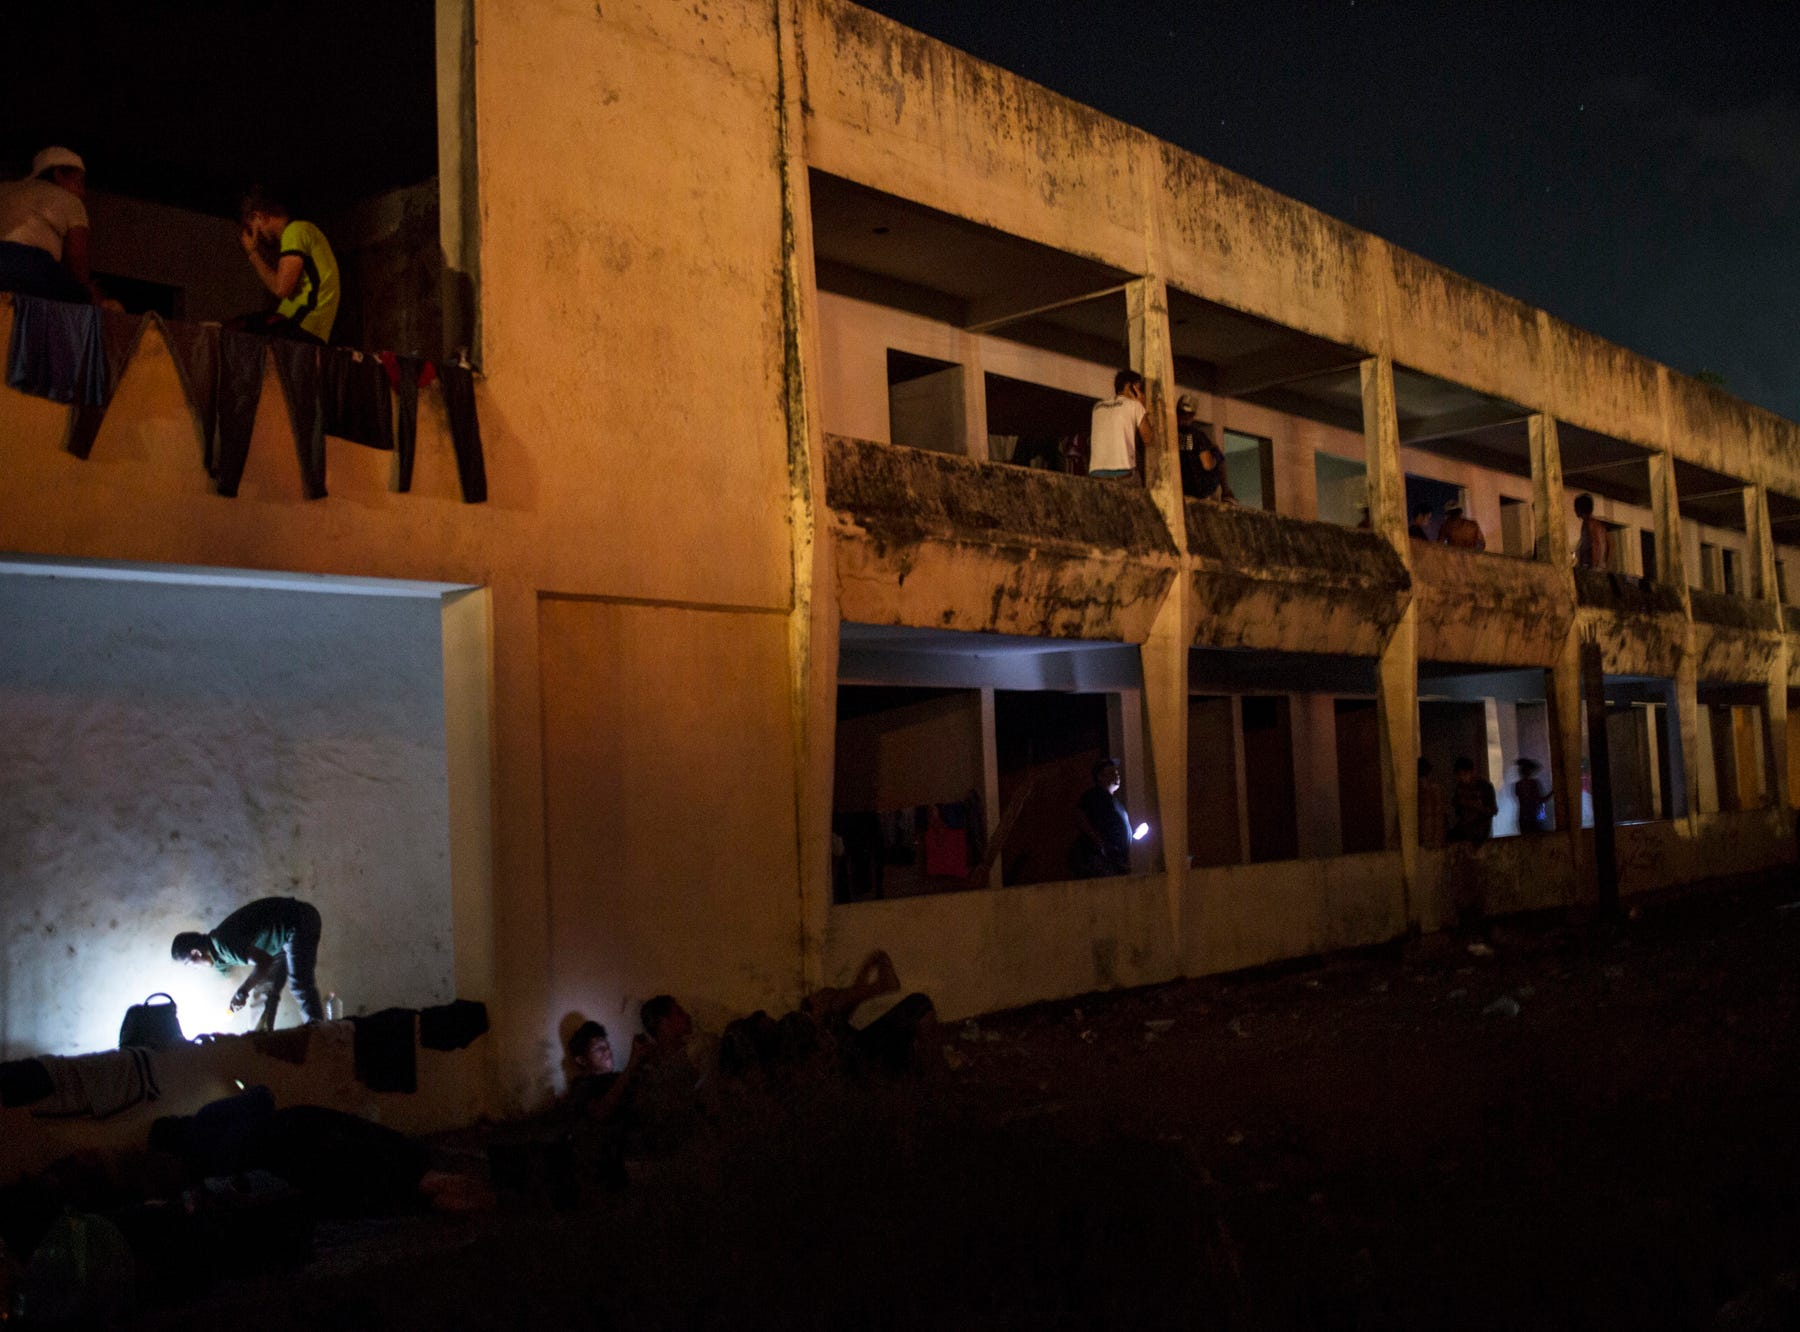 Central American migrants, part of a thousands-strong caravan hoping to reach the U.S., rest in an abandoned hotel in Matias Romero, Oaxaca state, Mexico, Thursday, Nov. 1, 2018. Thousands of migrants arrived in the town of Matias Romero after an exhausting 40-mile (65-kilometer) trek from Juchitan, Oaxaca, where they failed to get the bus transportation they had hoped for. (AP Photo/Rodrigo Abd)